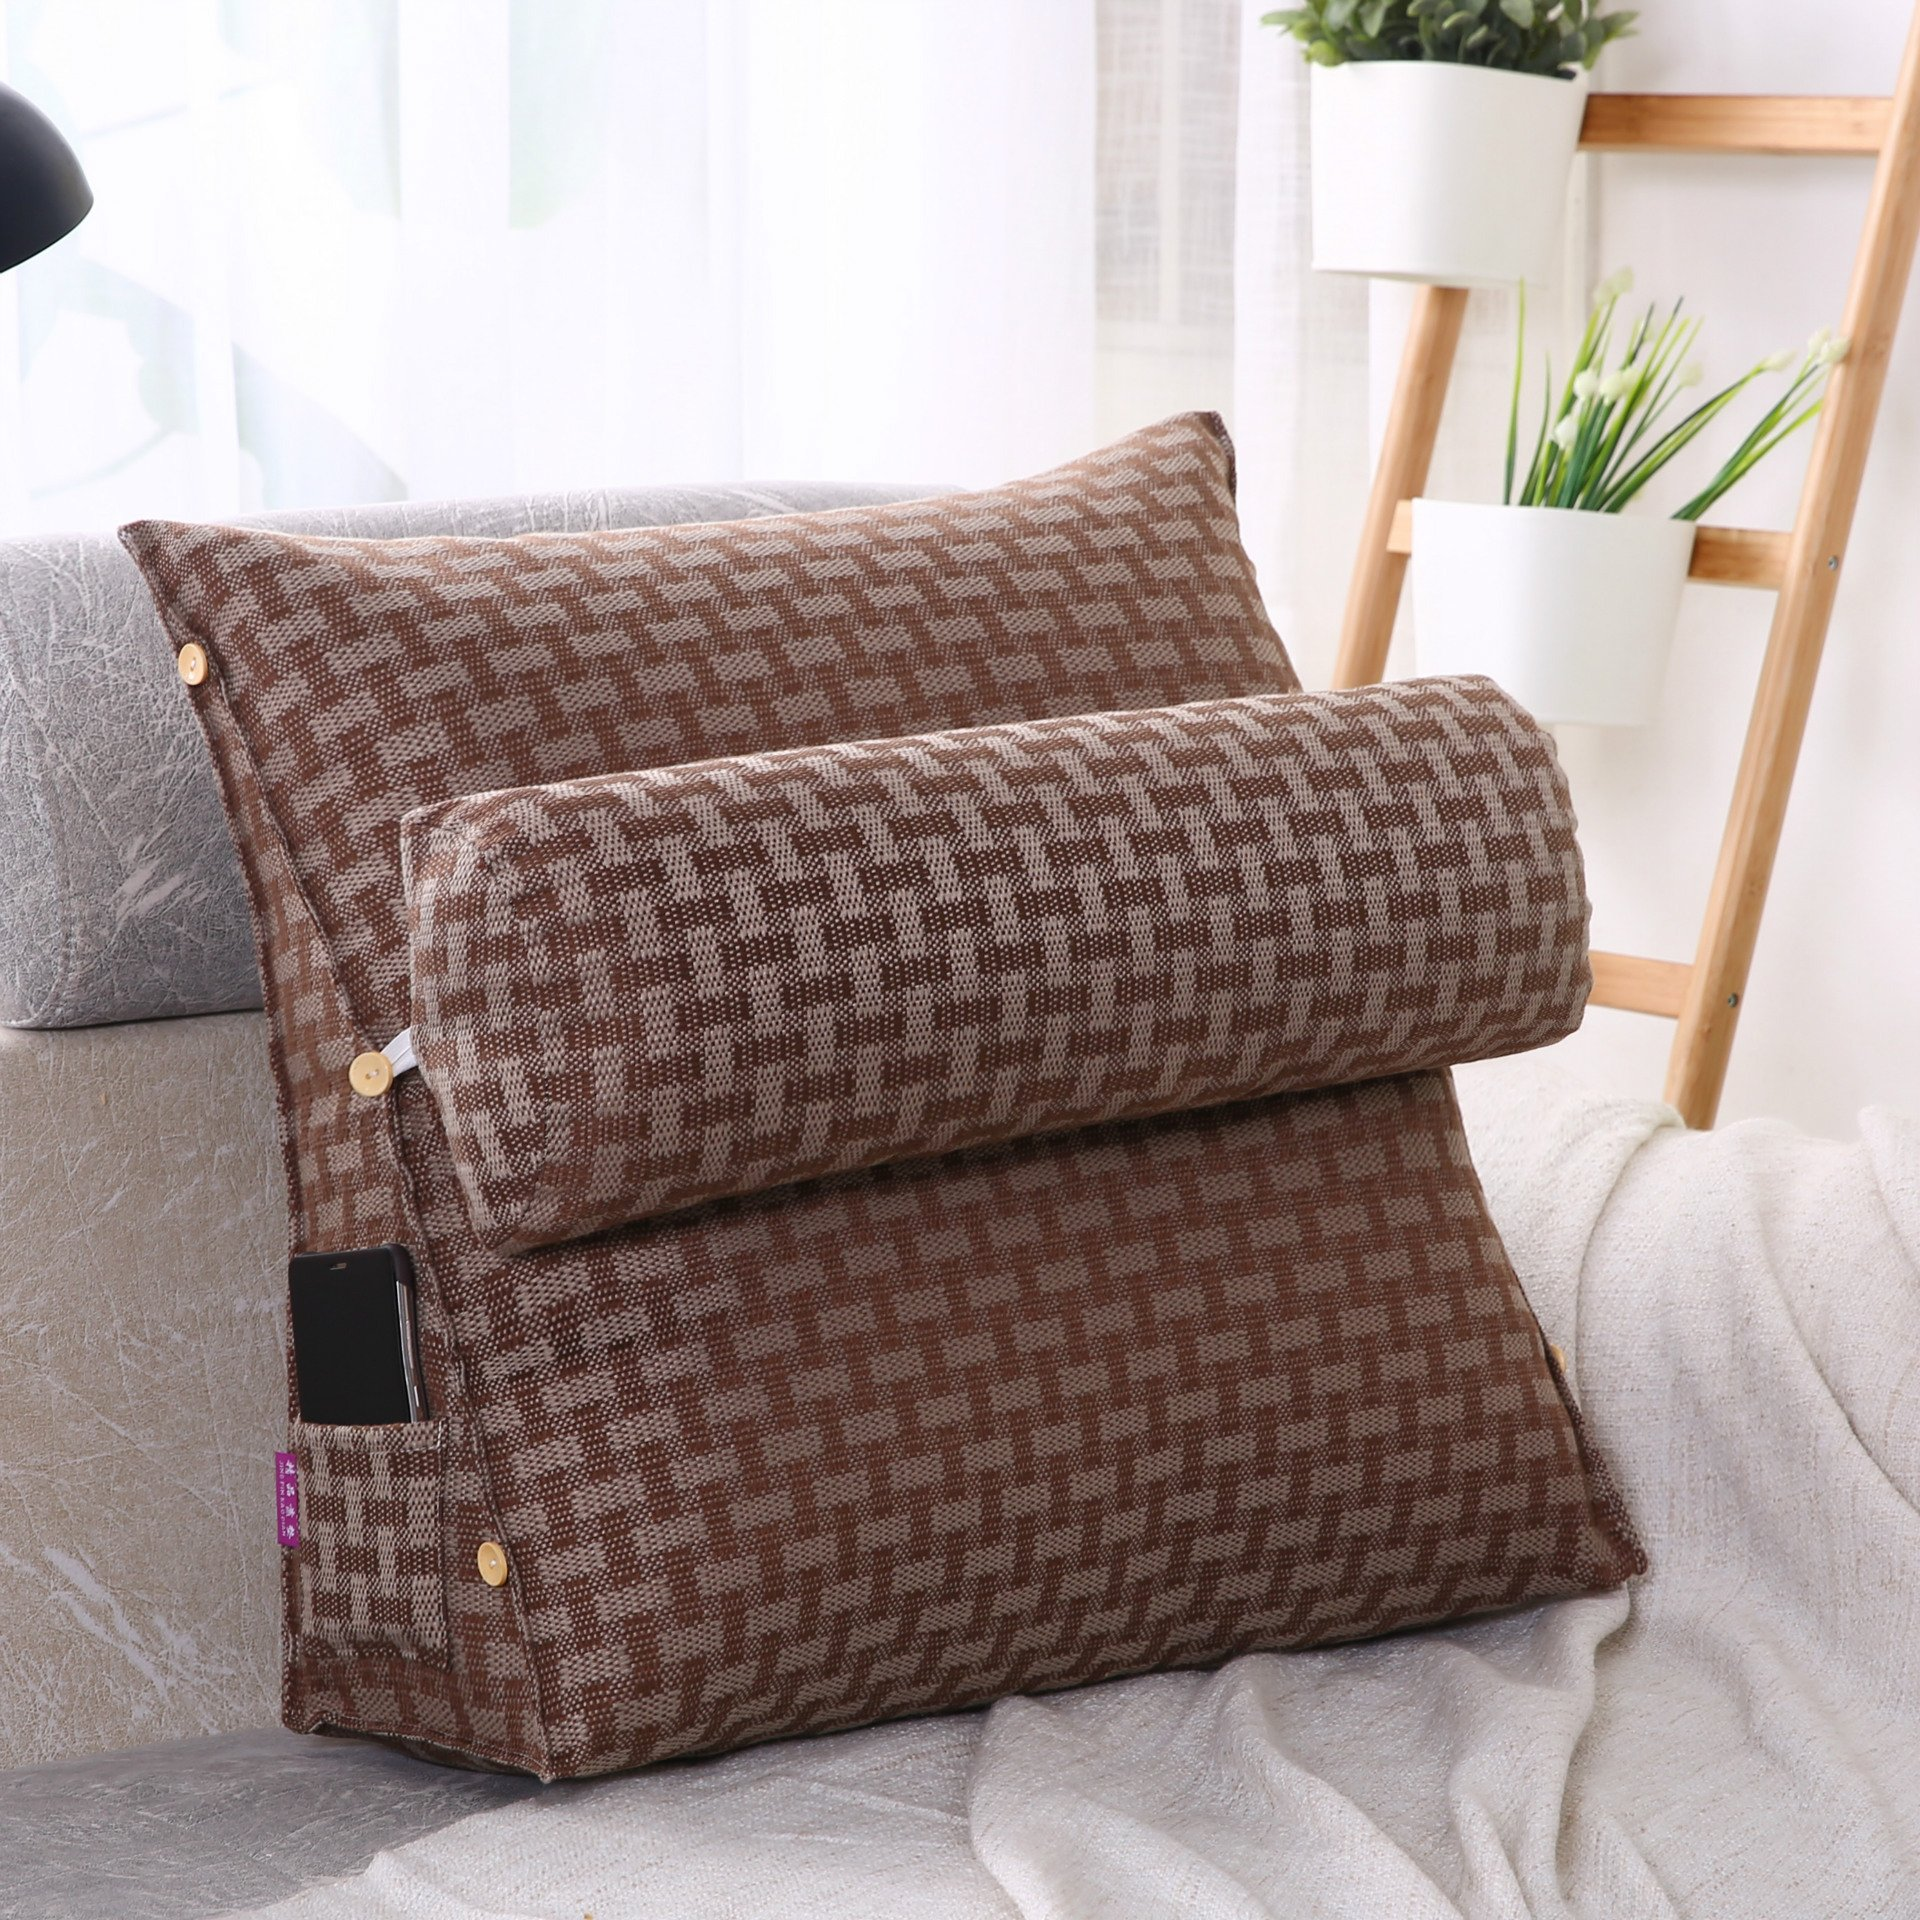 LUOTIANLANG Office sofa cushion pillow waist pillow for pregnant women Home Furnishing ornaments triangle comfortable cushion,Tartan,50x200x20cm